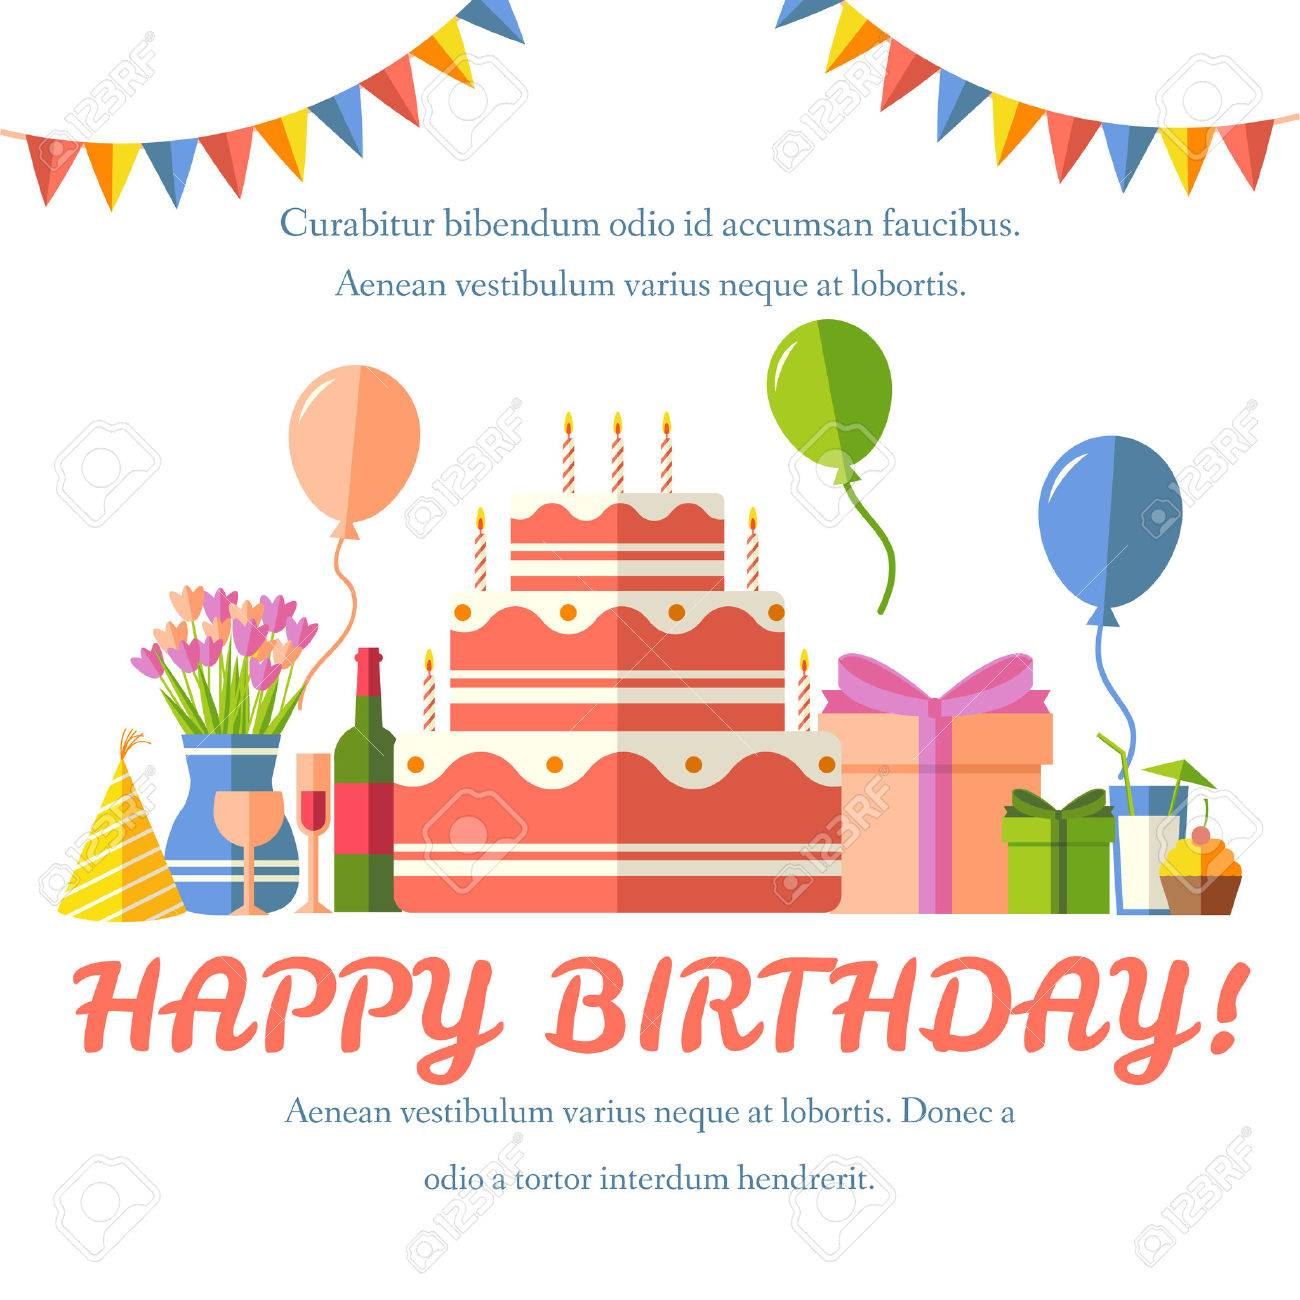 Flat happy Birthday festive background with confetti icons set. Party and celebration design elements: balloons, confetti, cake, drinks, gifts concept - 51591661